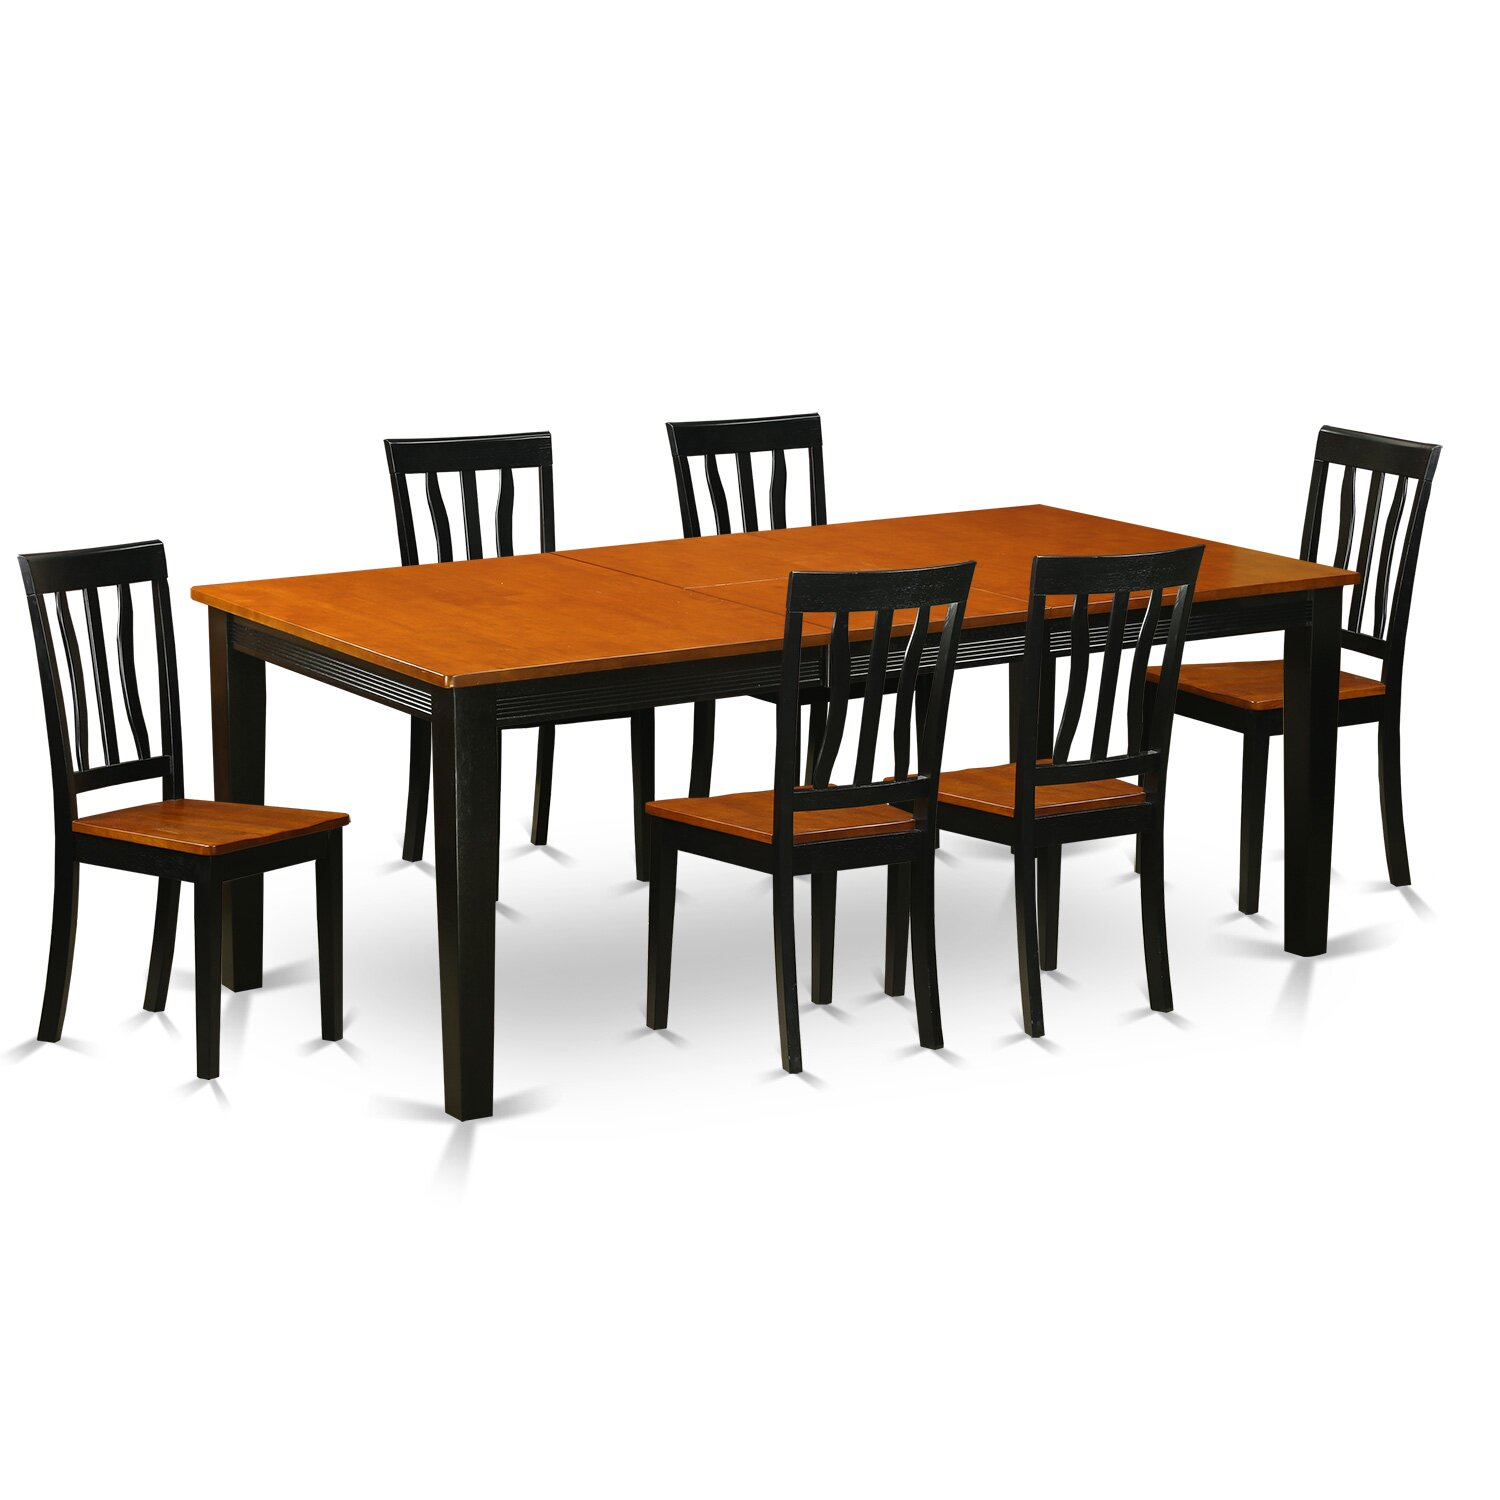 Very Impressive portraiture of  Dining Set Dining Table with 6 Solid Wood Dining Chairs QUAN7 BCH.jpg with #B2510F color and 1500x1500 pixels